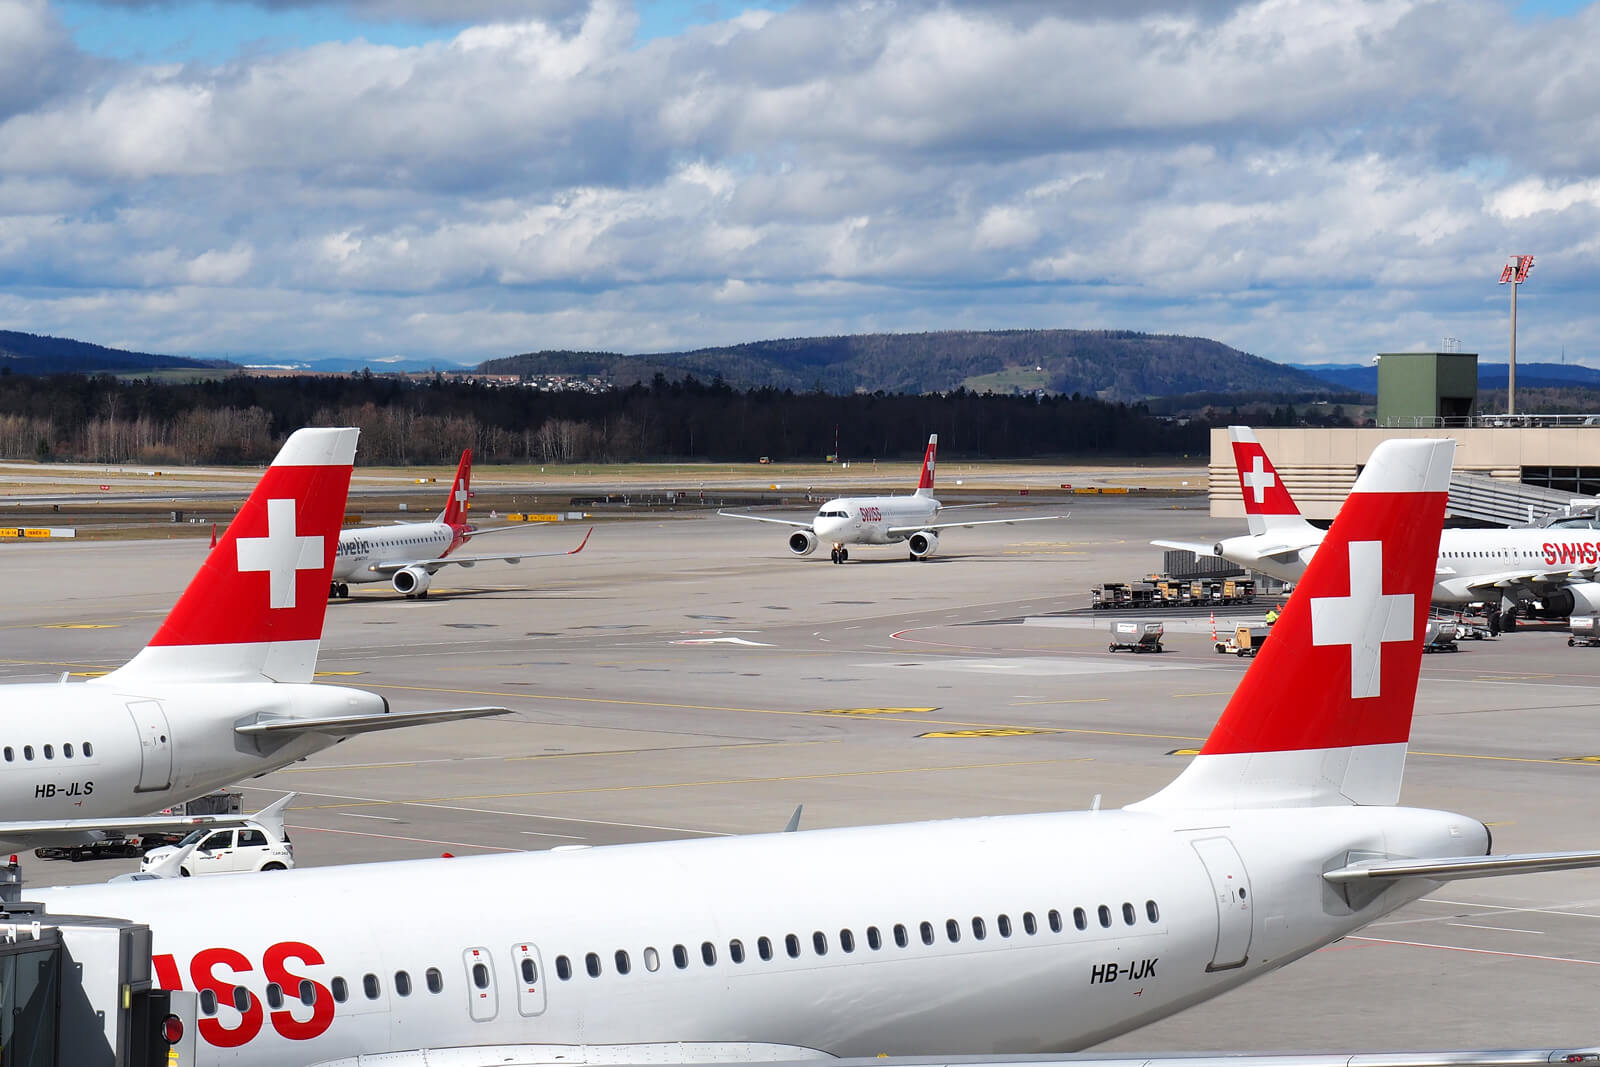 Swiss Air Lines Aircraft at ZRH Airport